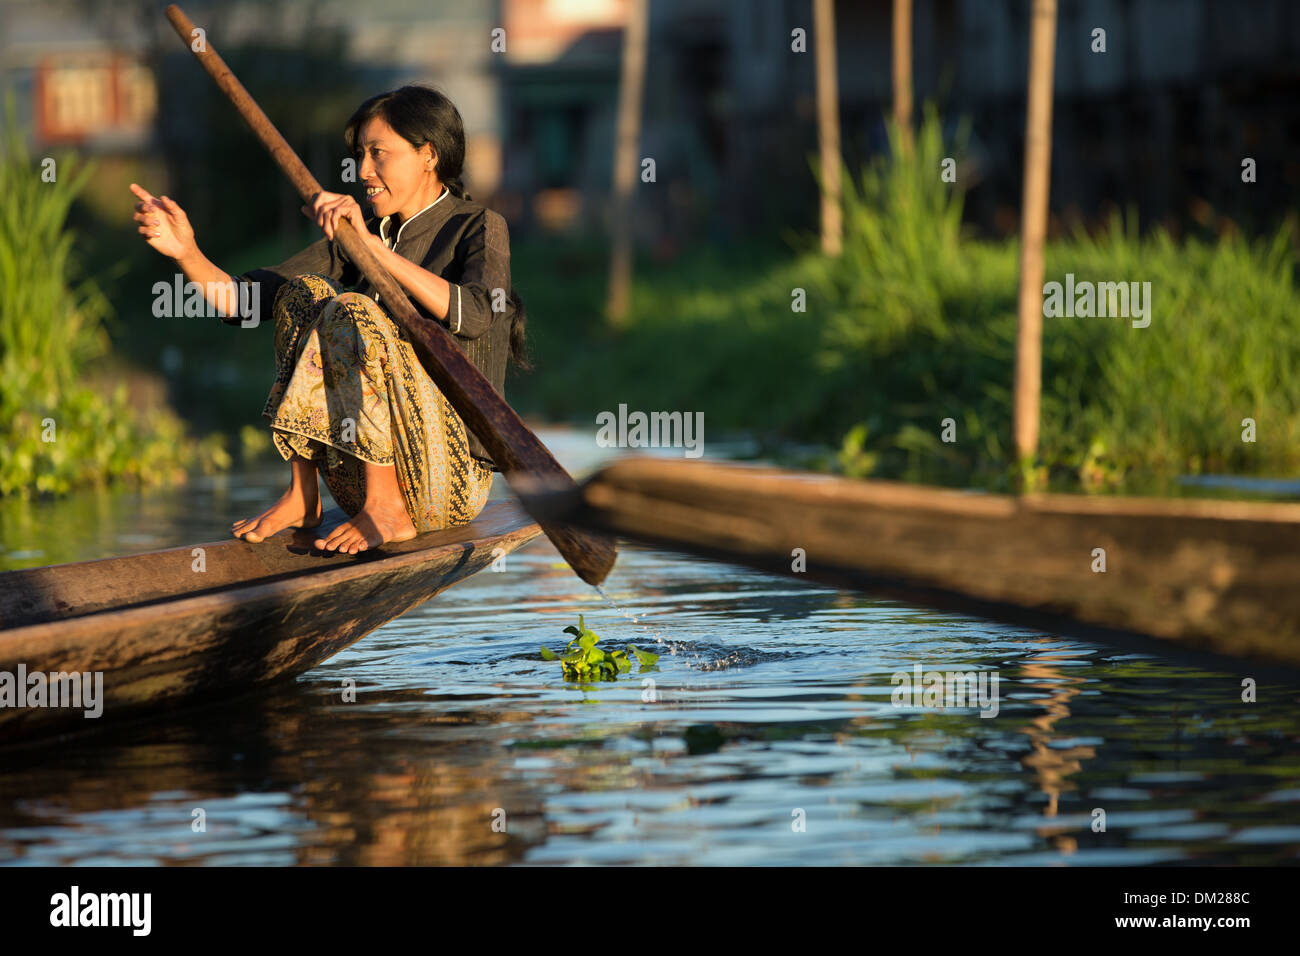 life on the water, Inle Lake, Myanmar (Burma) - Stock Image